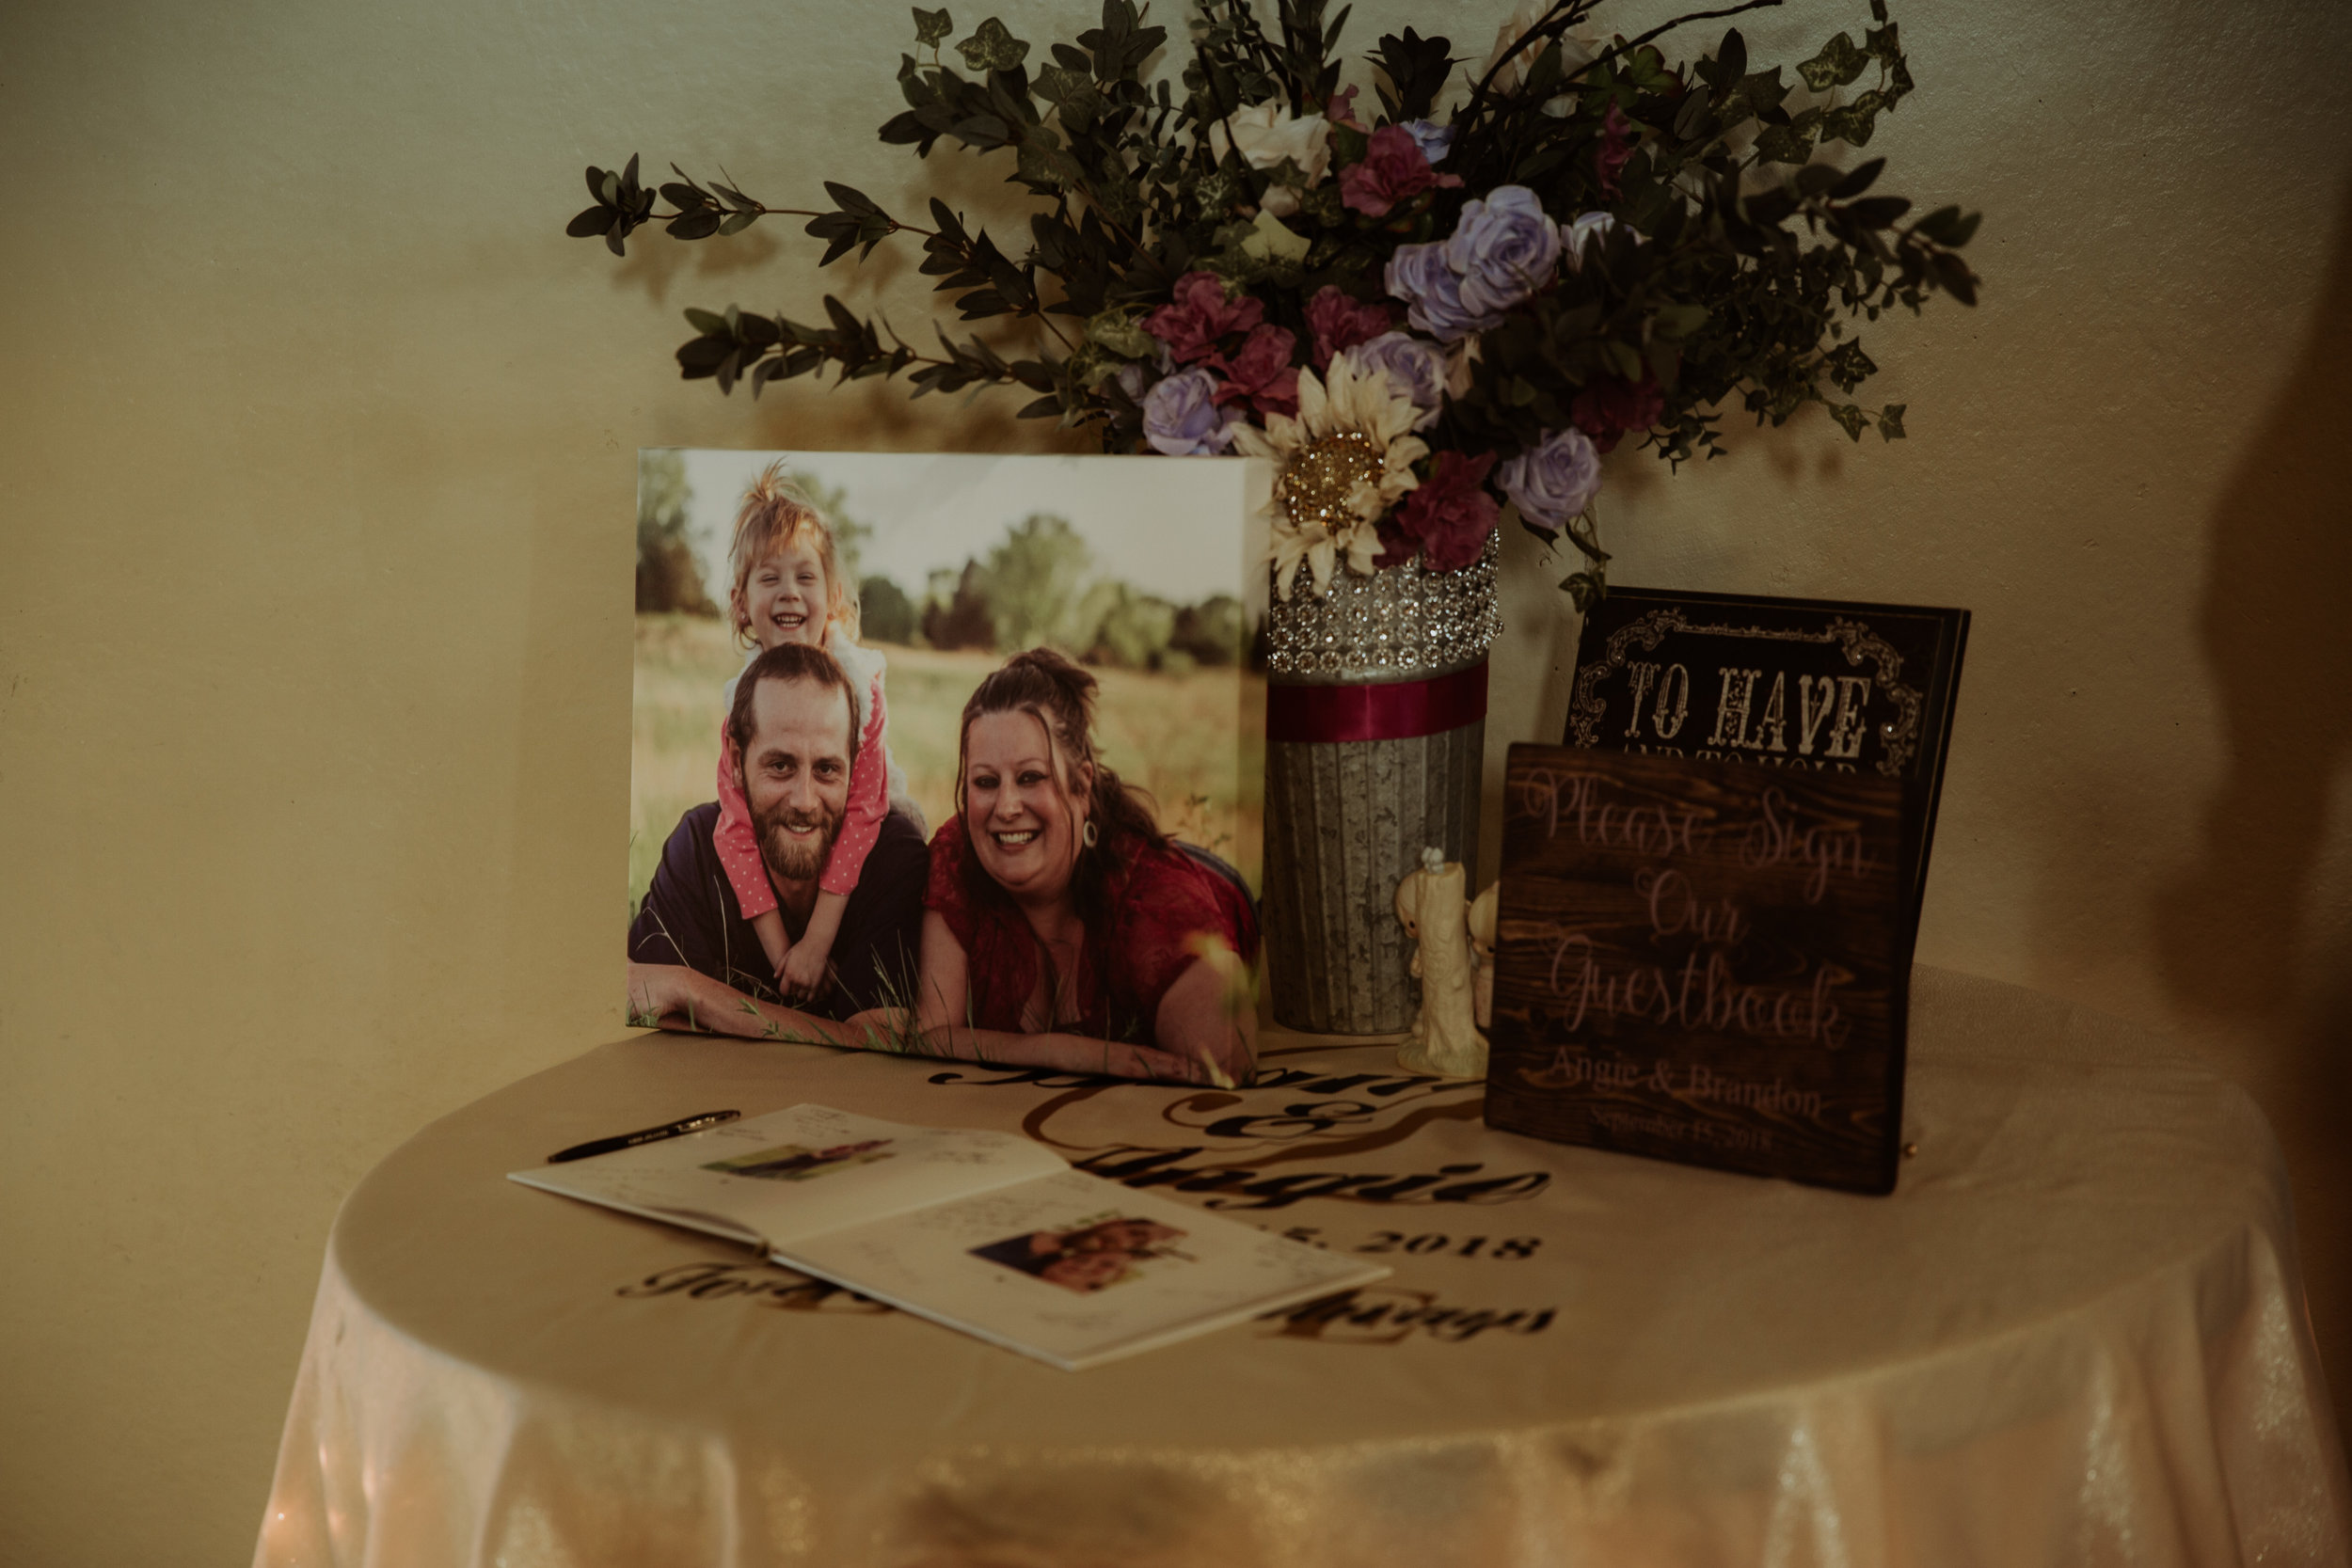 This couple incorporated their daughter into their Engagement Session. Then they had a guest book printed that included images from their Engagement Session.